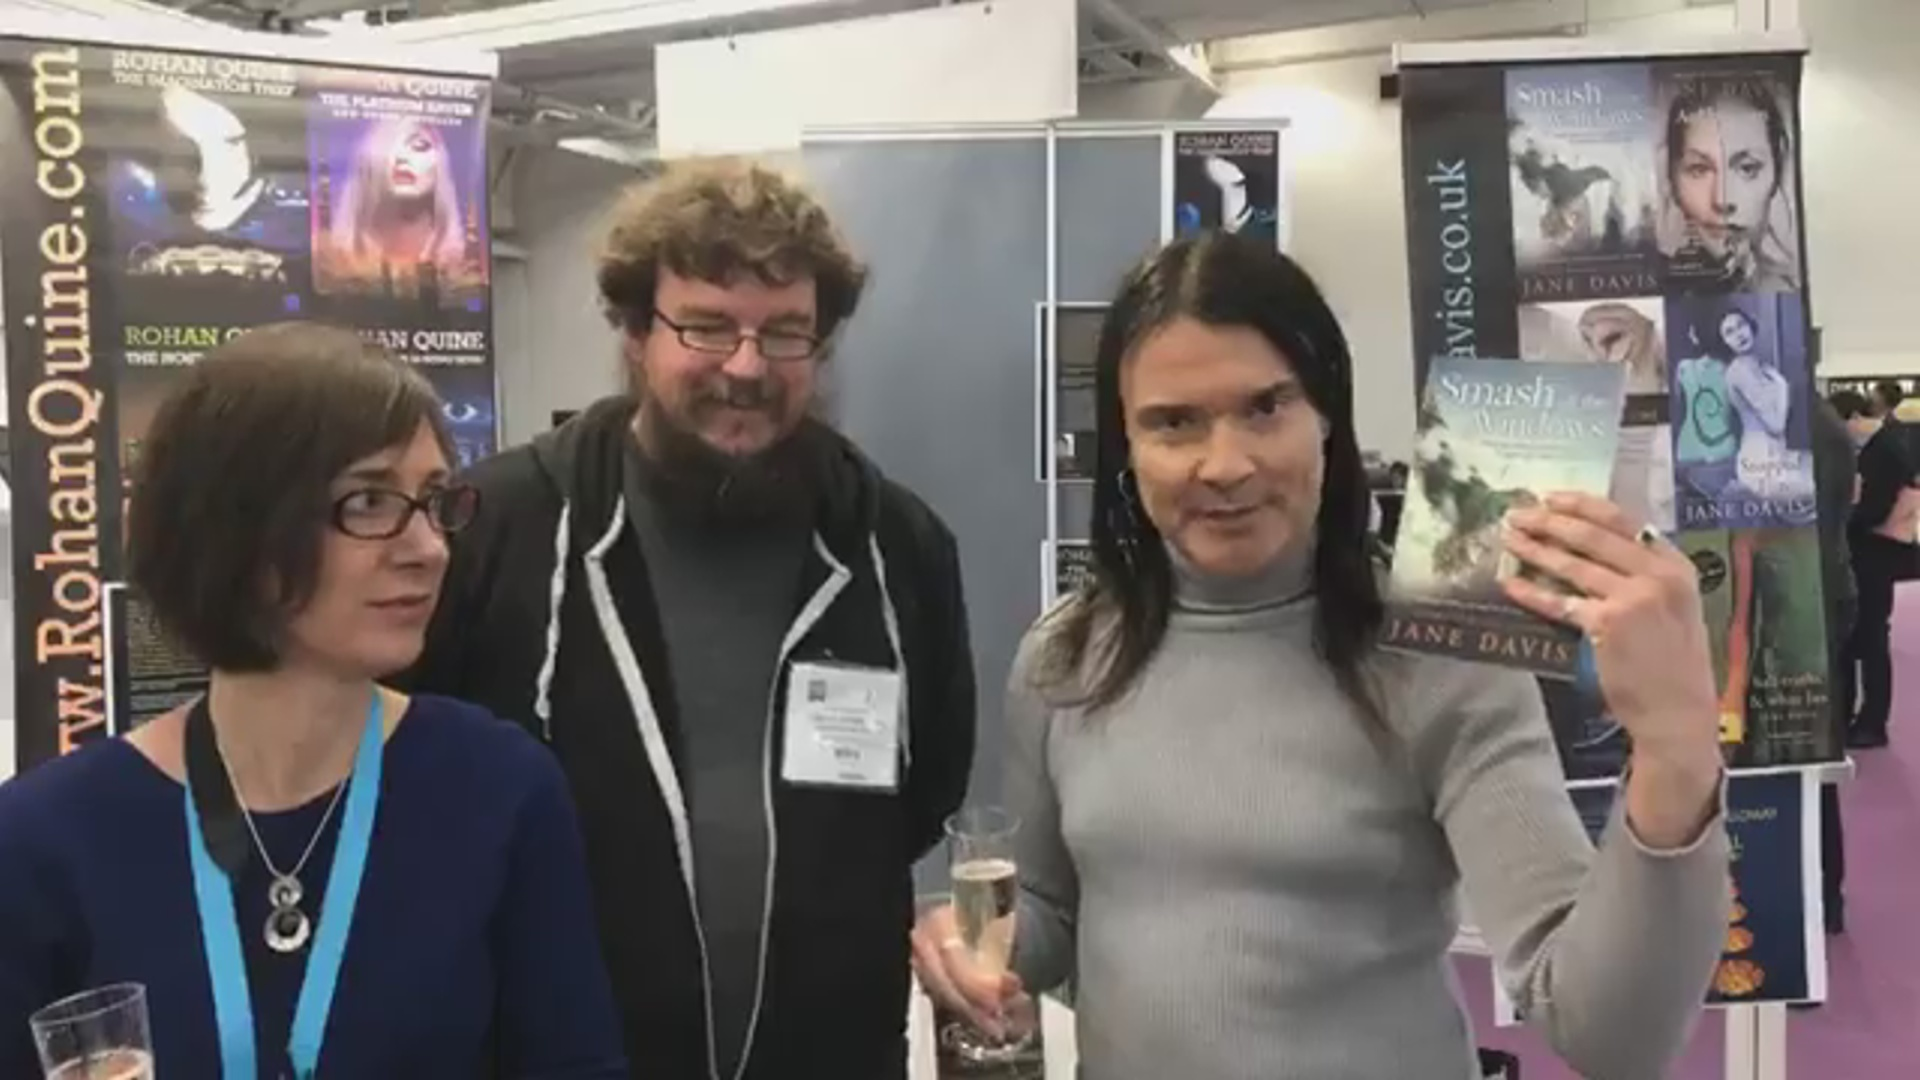 LBF18 launch of Rohan Quine's 'The Beasts of Electra Drive', Dan Holloway's 'Kill Land' & Jane Davis's 'Smash all the Windows' - 4